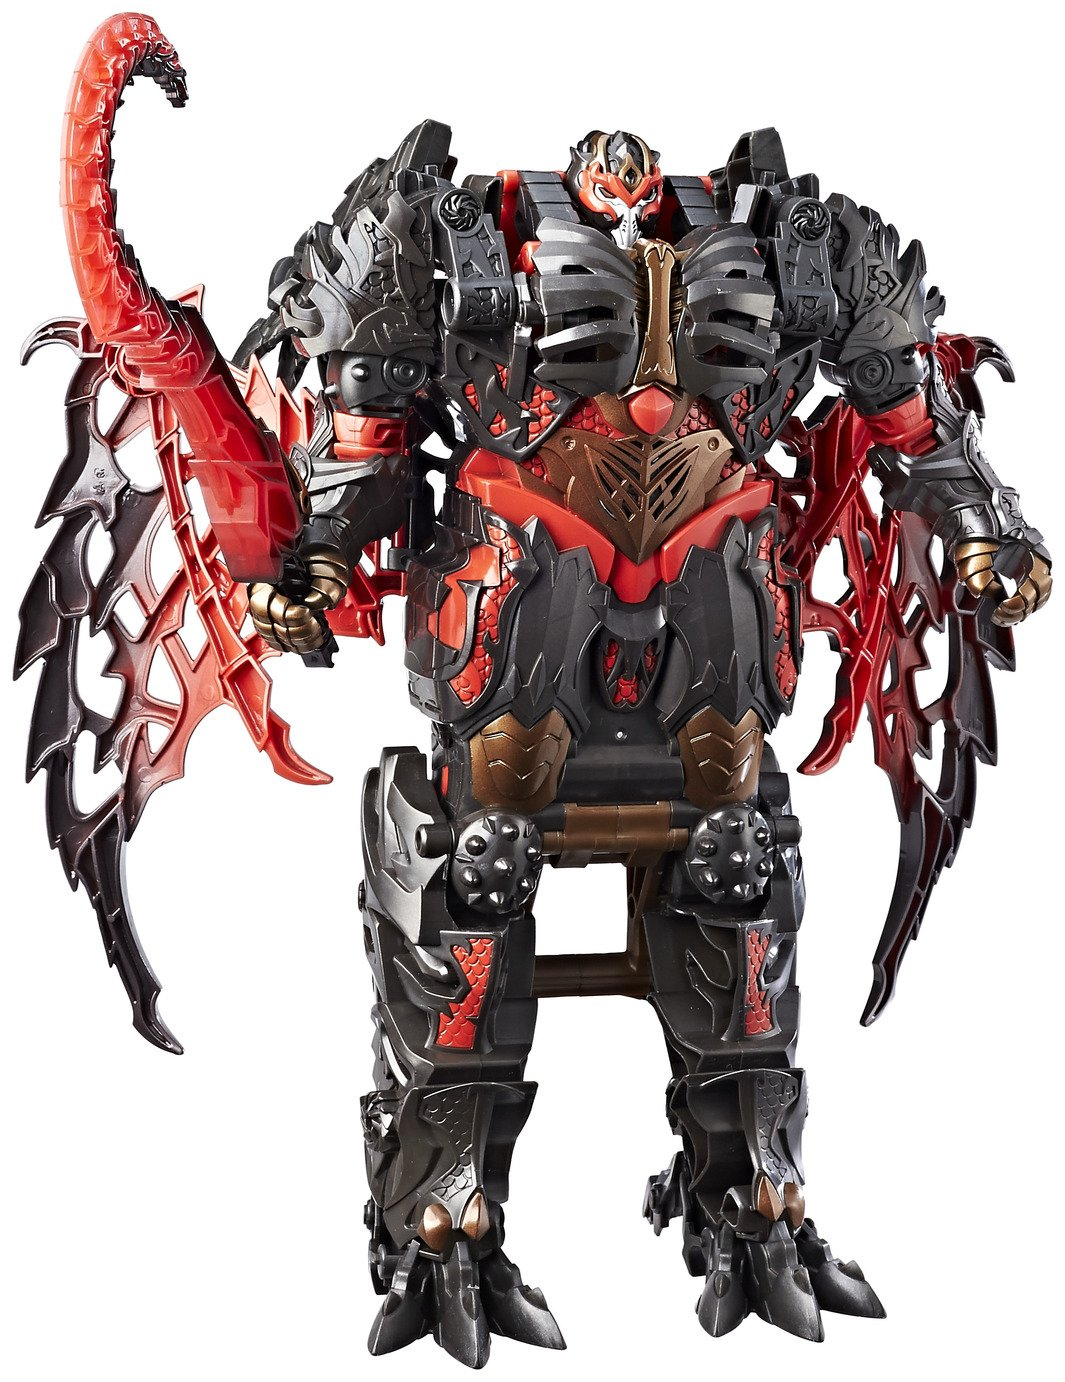 Image of Transformers: The Last Knight Mega 1Step Changer Dragonstorm